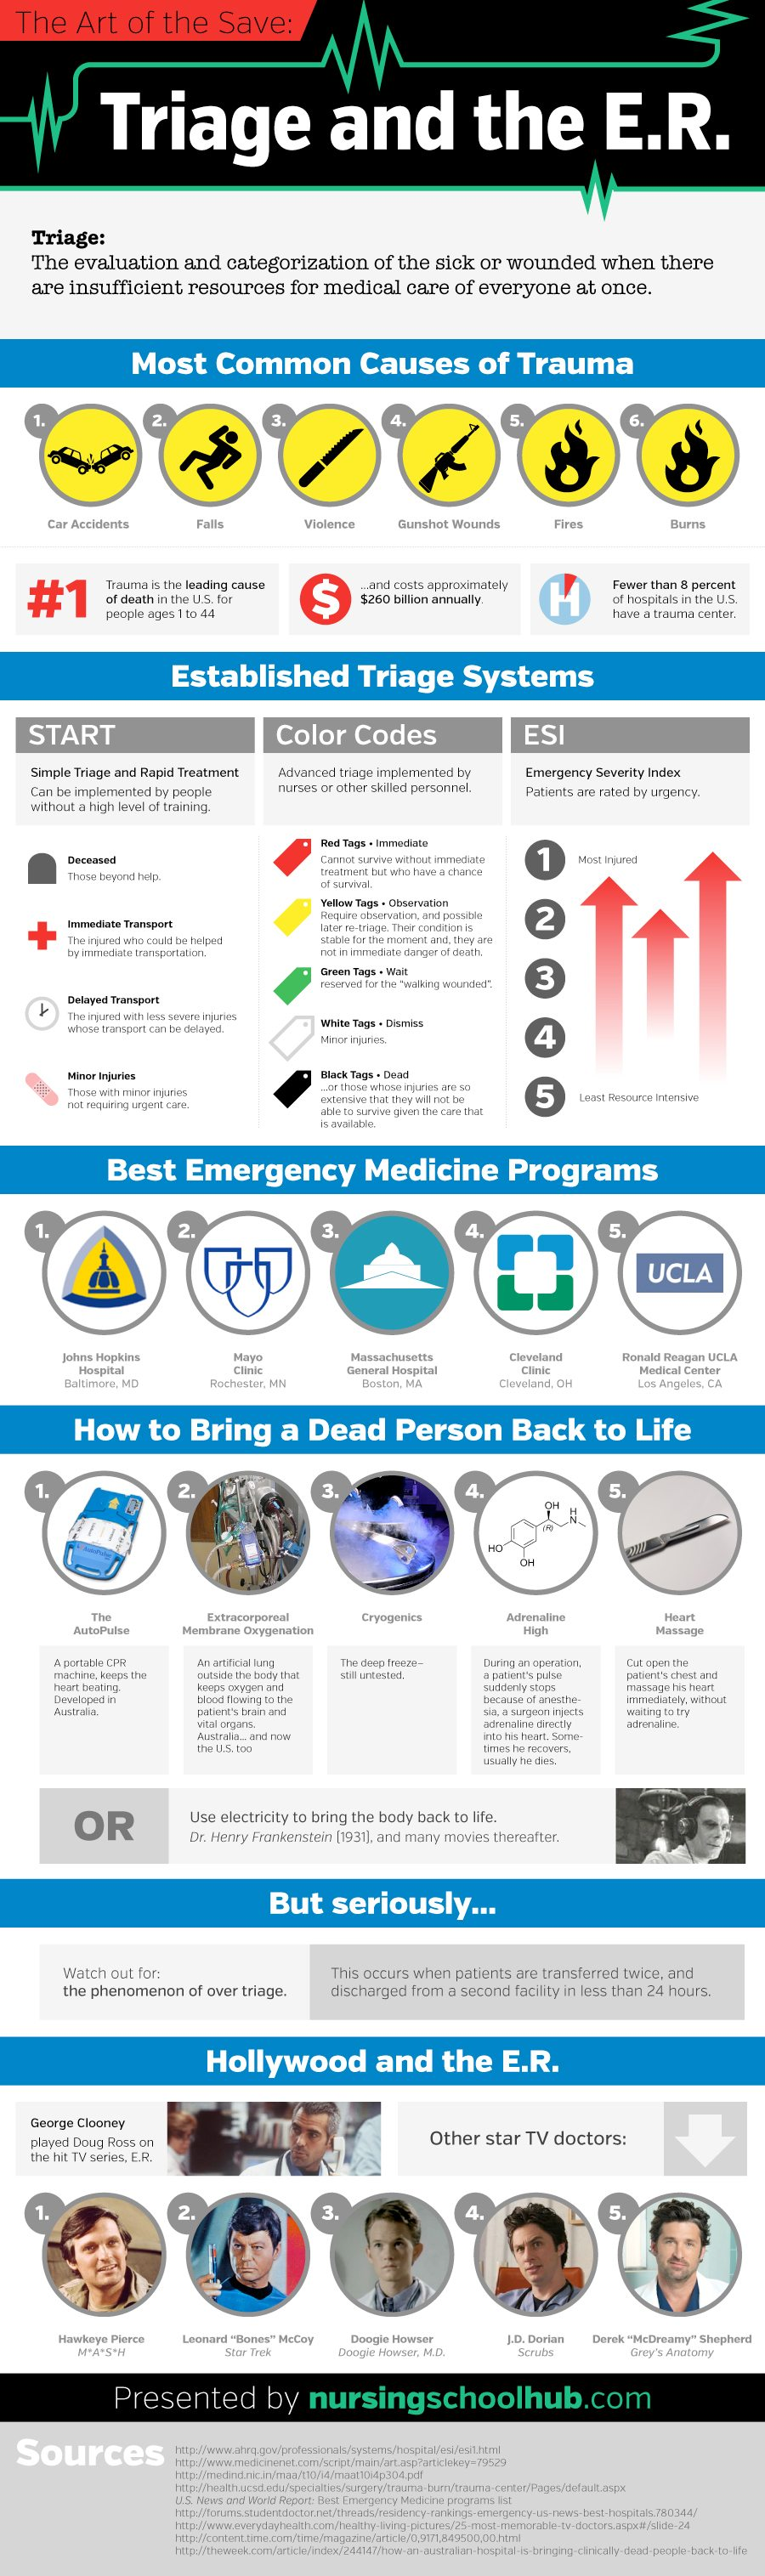 Triage in the Emergency Department Infographic